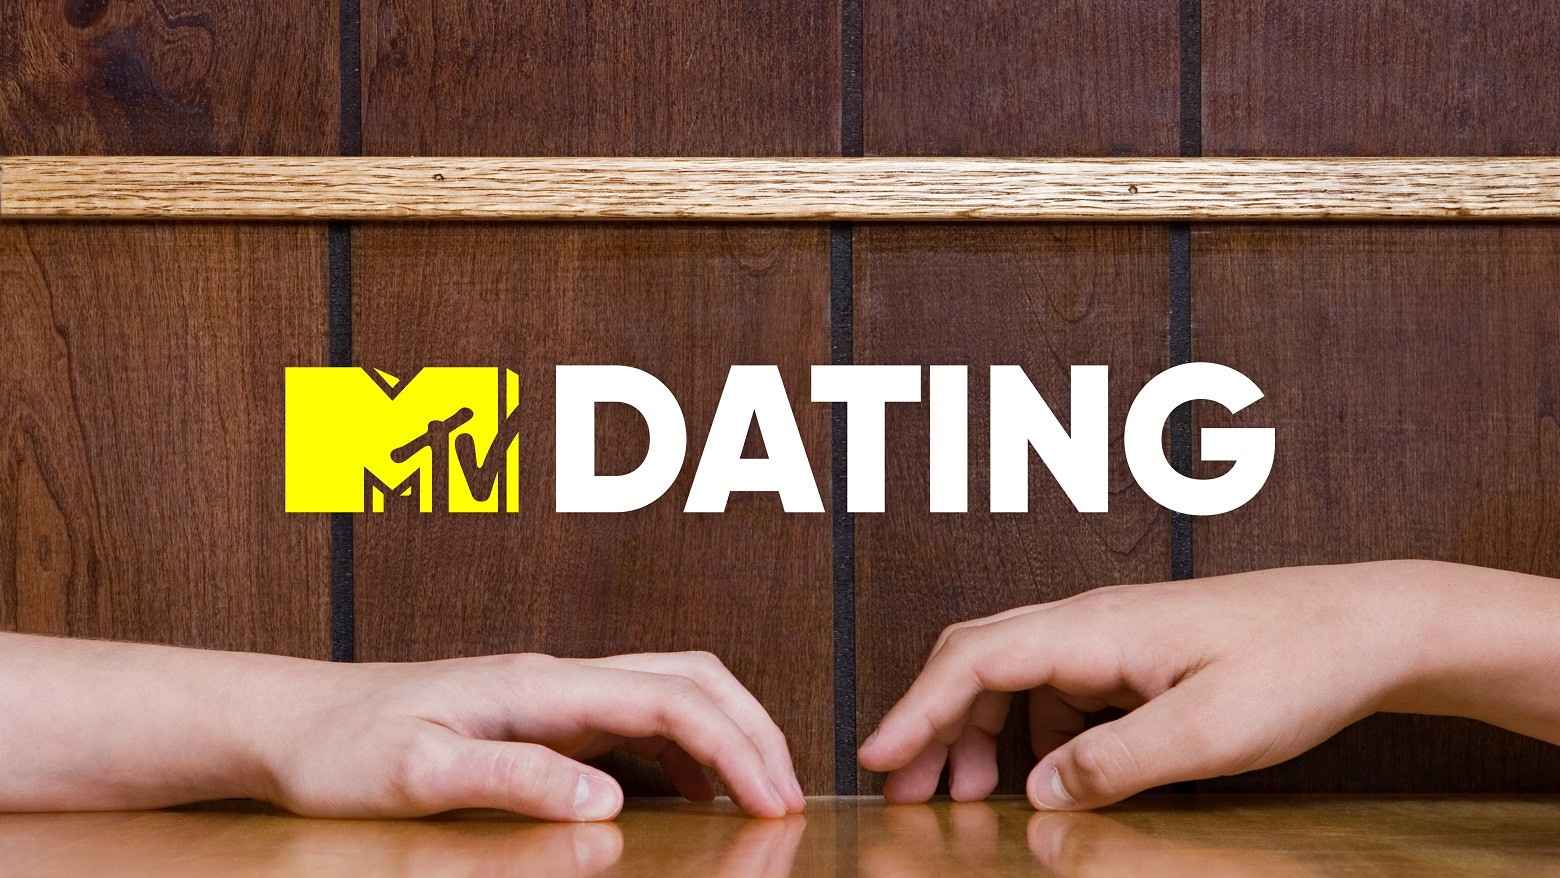 MTV Dating featuredImage.jpg